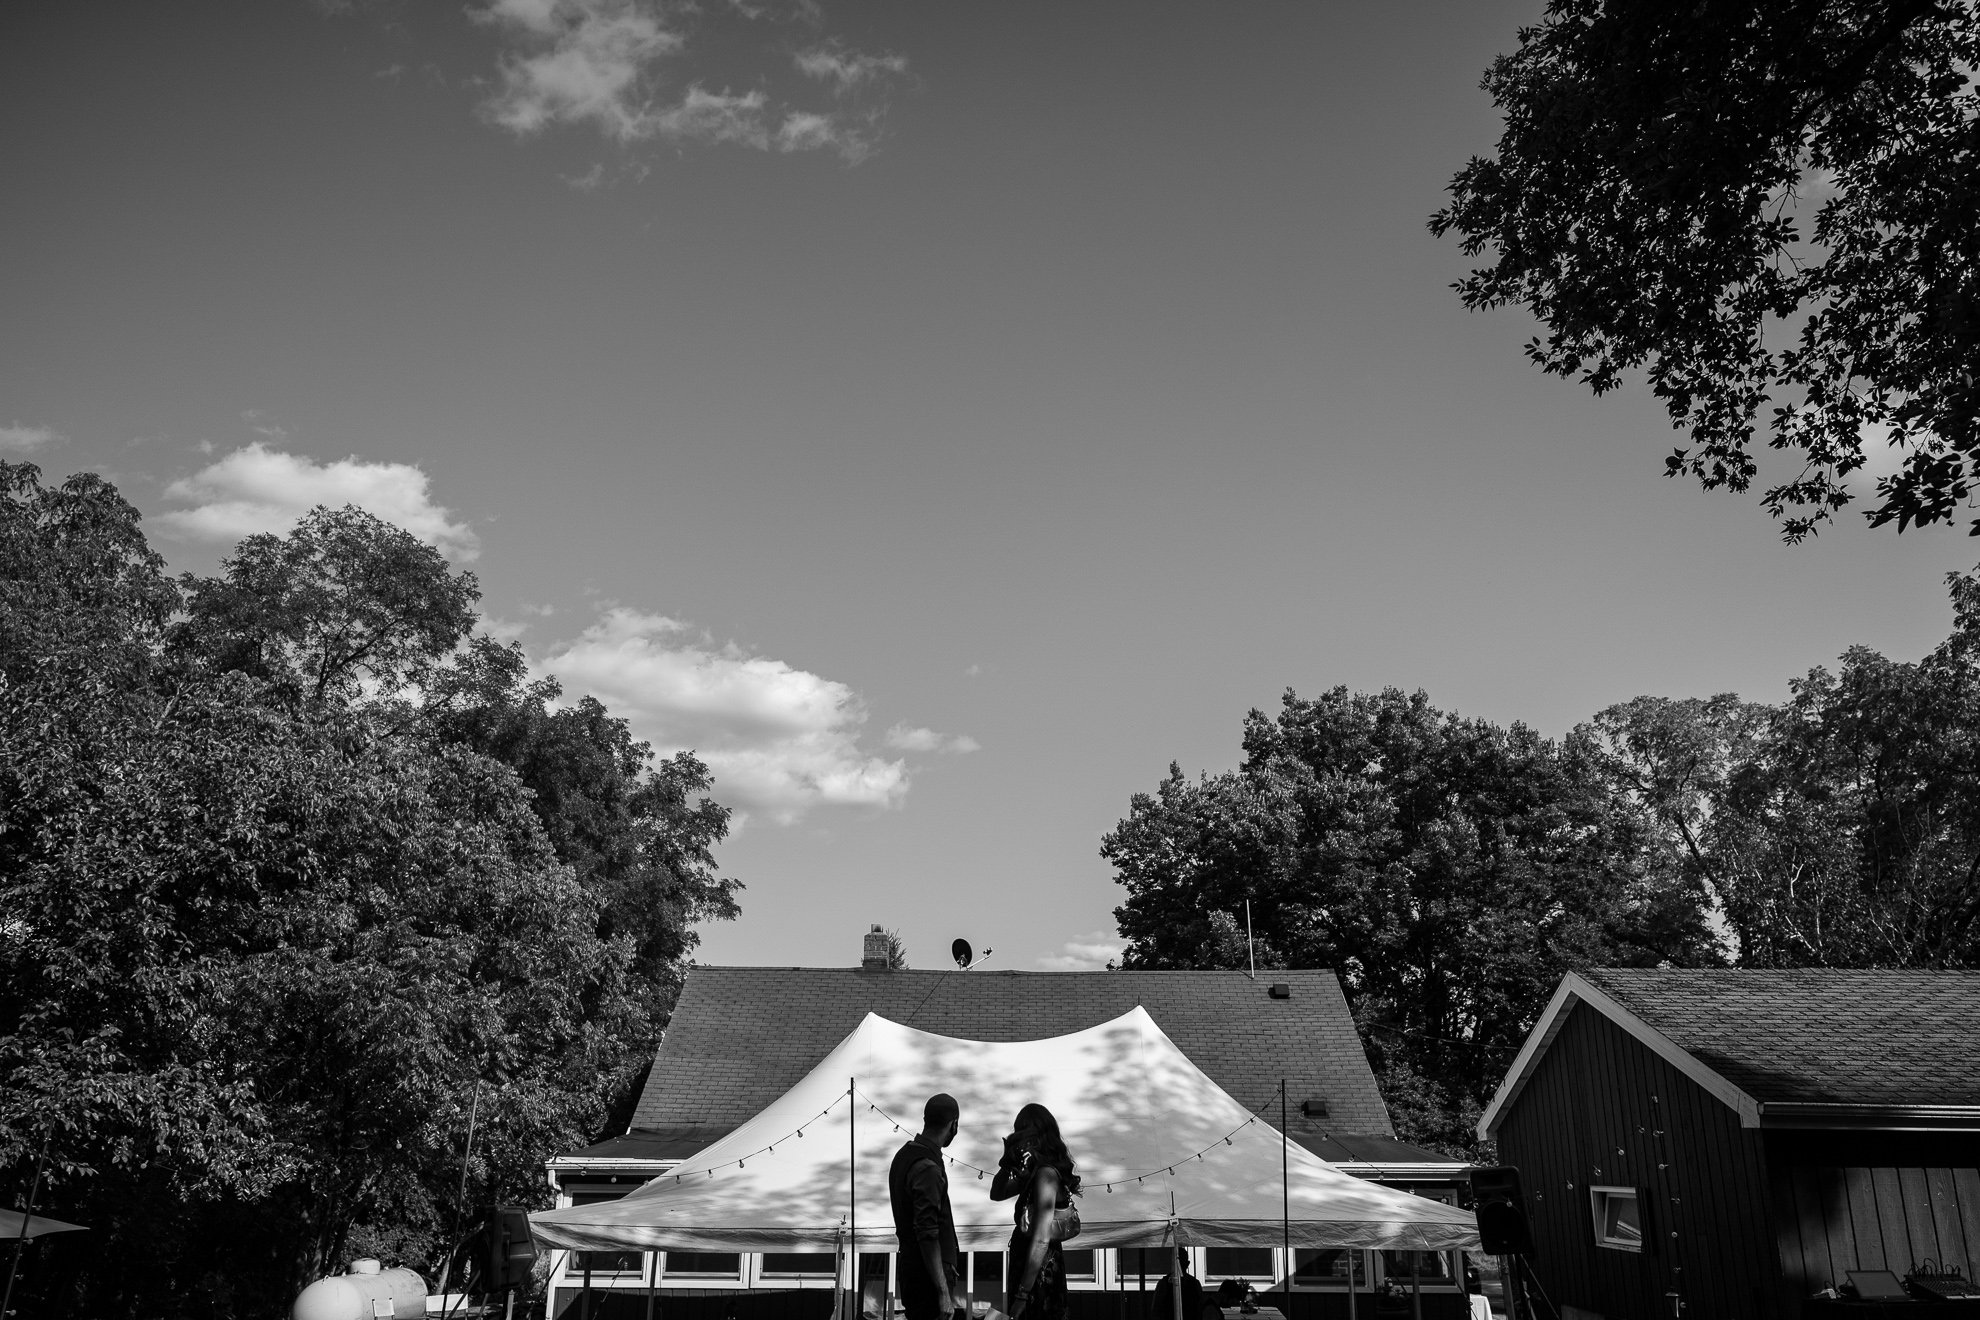 wedding tent with a couples silhouette